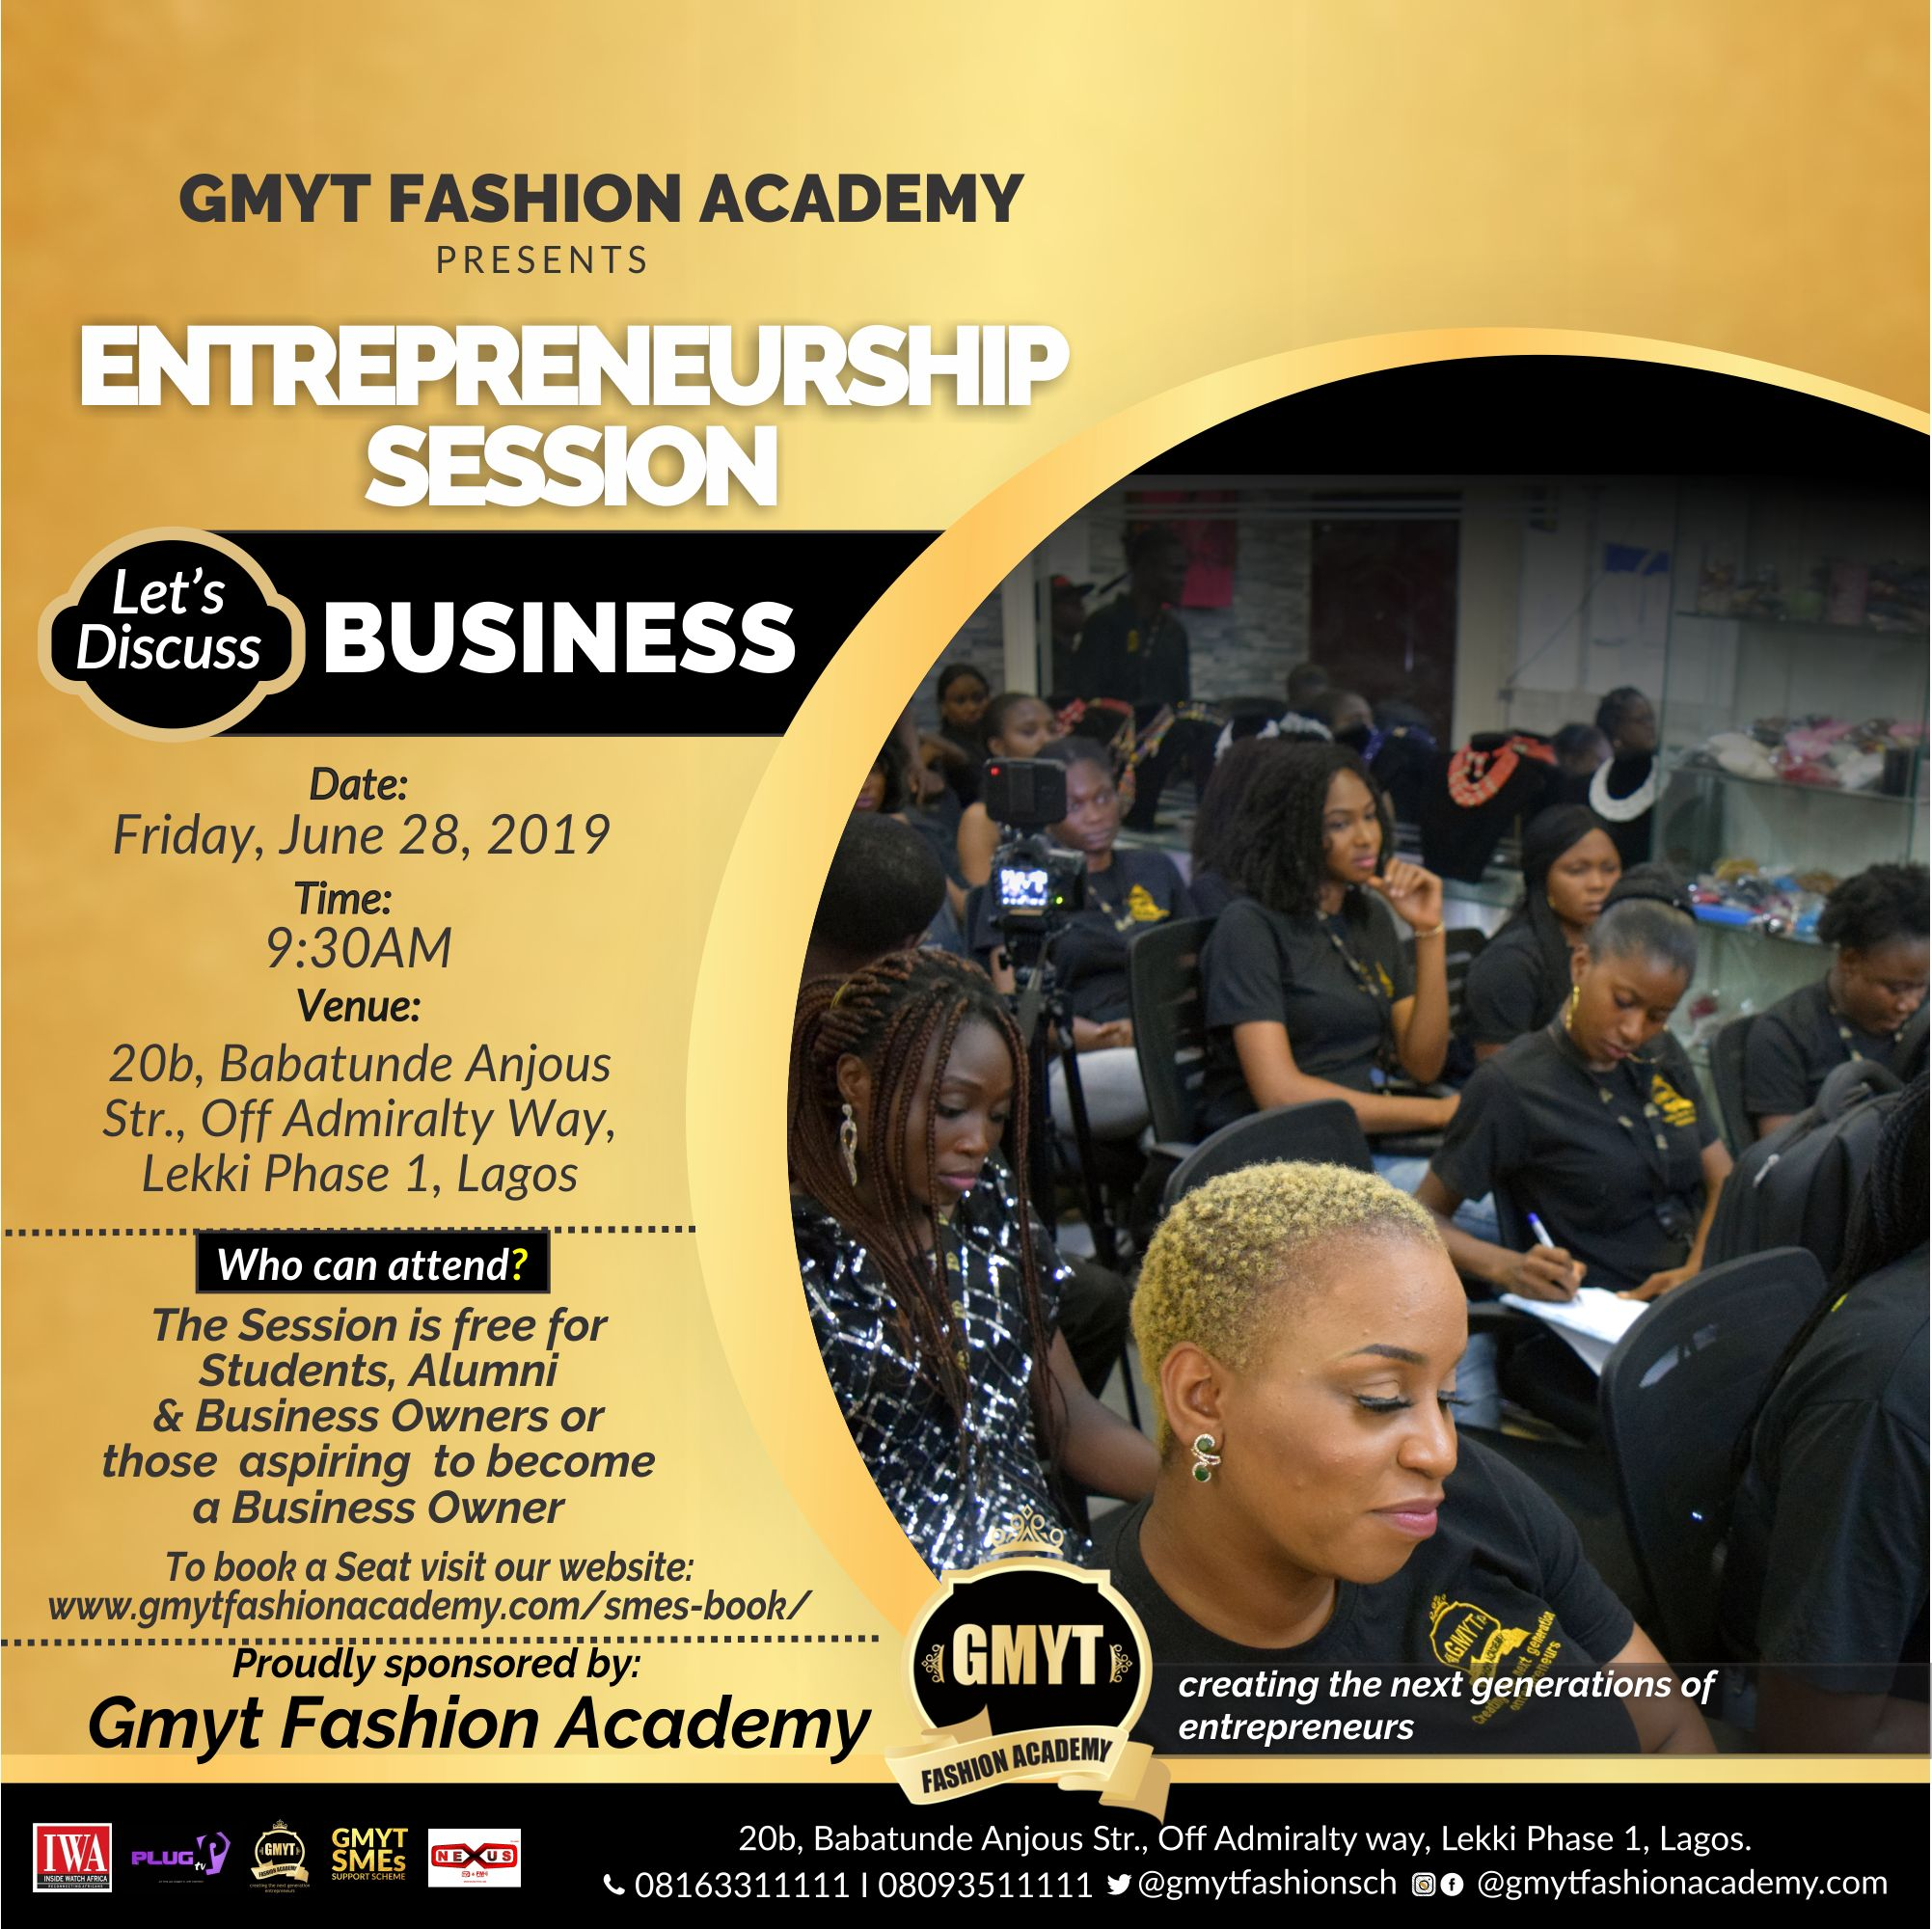 GMYT may ENTREPRENUER SESSION